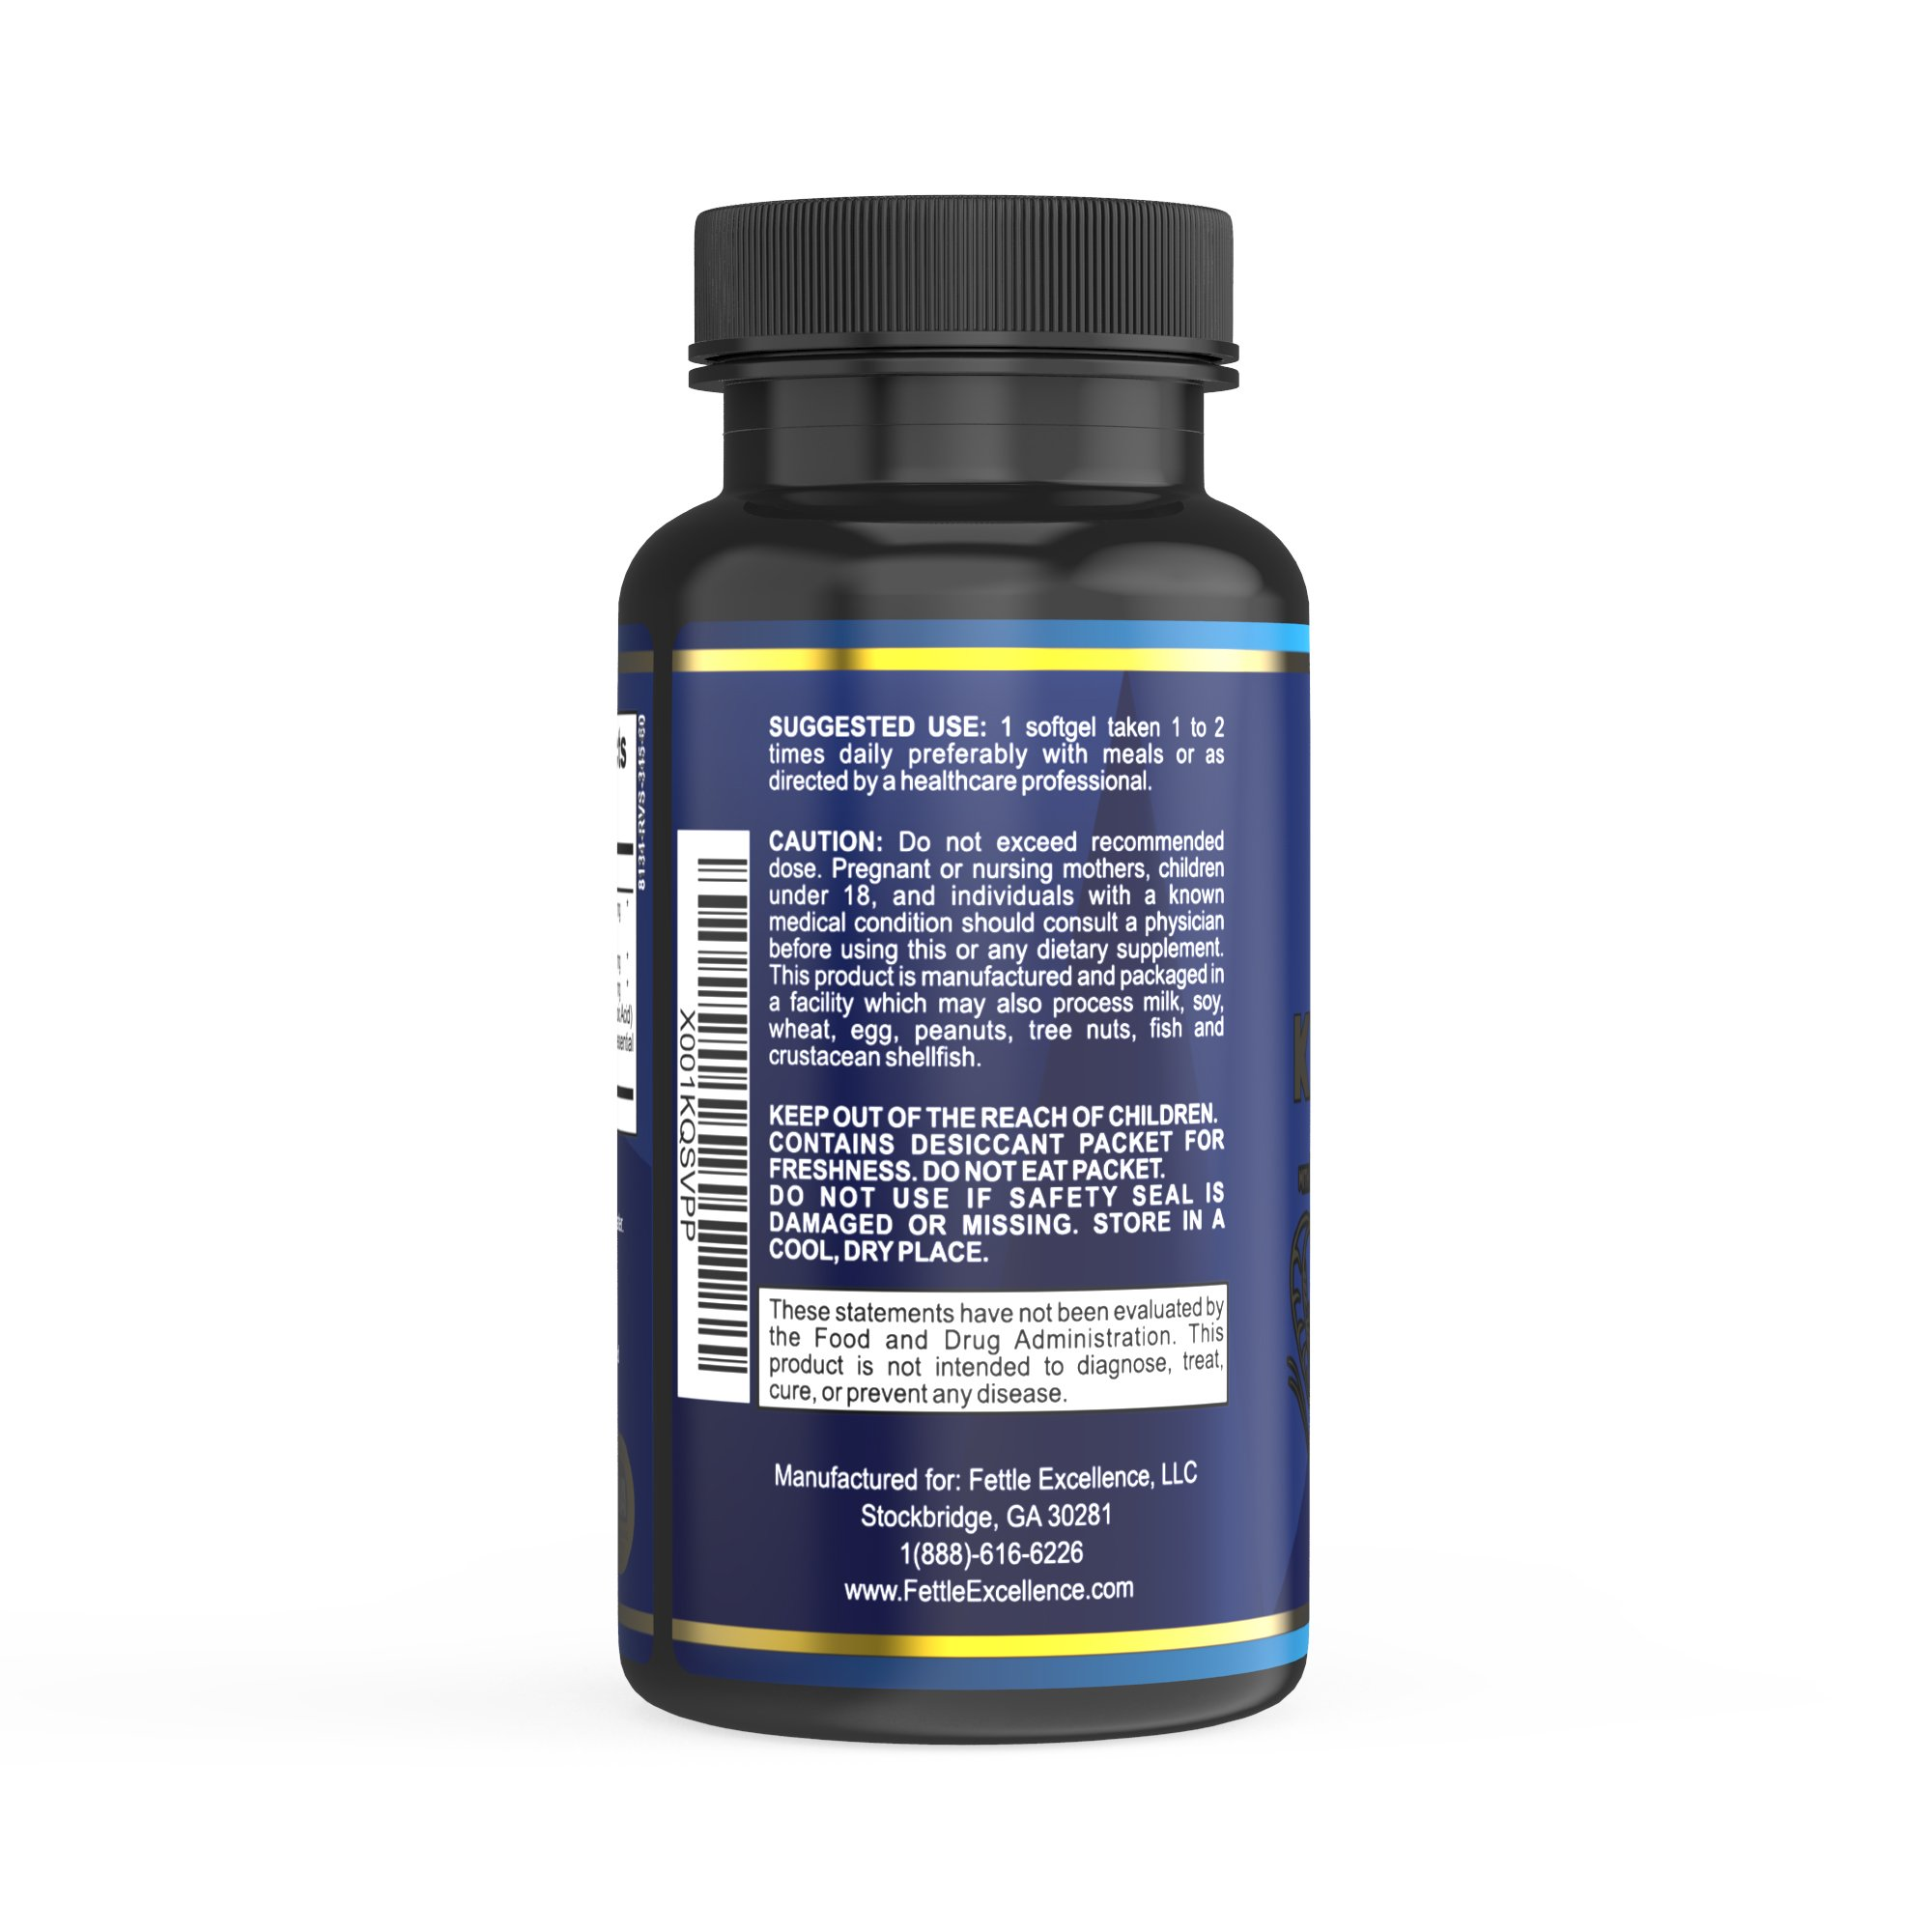 Premium Krill Oil Supplement with EPA/DHA by Fettle Excellence, Astaxanthin, Memory & Mood Enhancer, Boosts Energy, Fights Inflammation, Supports Healthy Joints and Cardiovascular Health, 60 softgels by Fettle Excellence (Image #3)